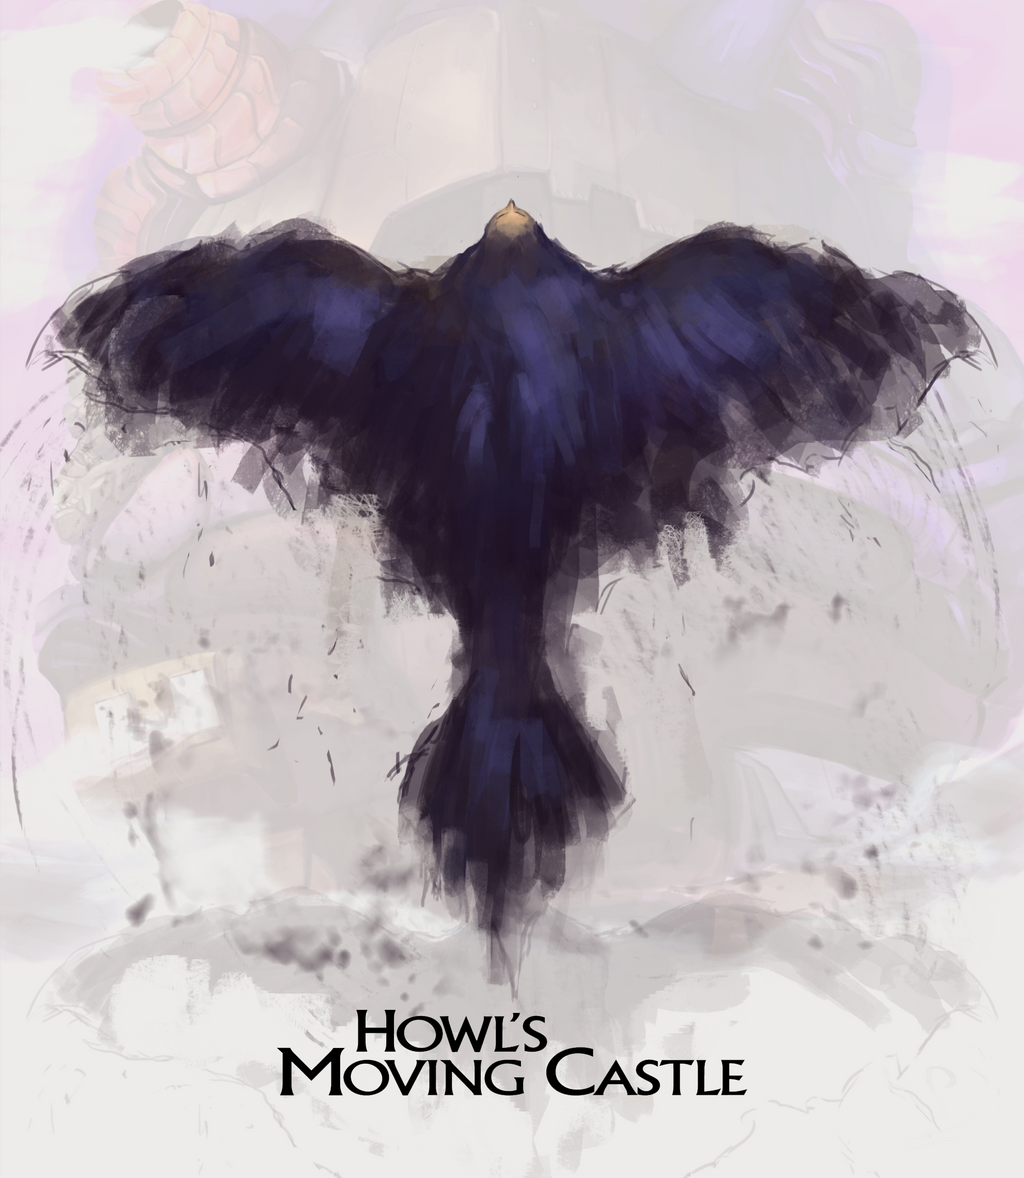 Howl's Moving Castle Poster 2 By PedroCampello On DeviantArt